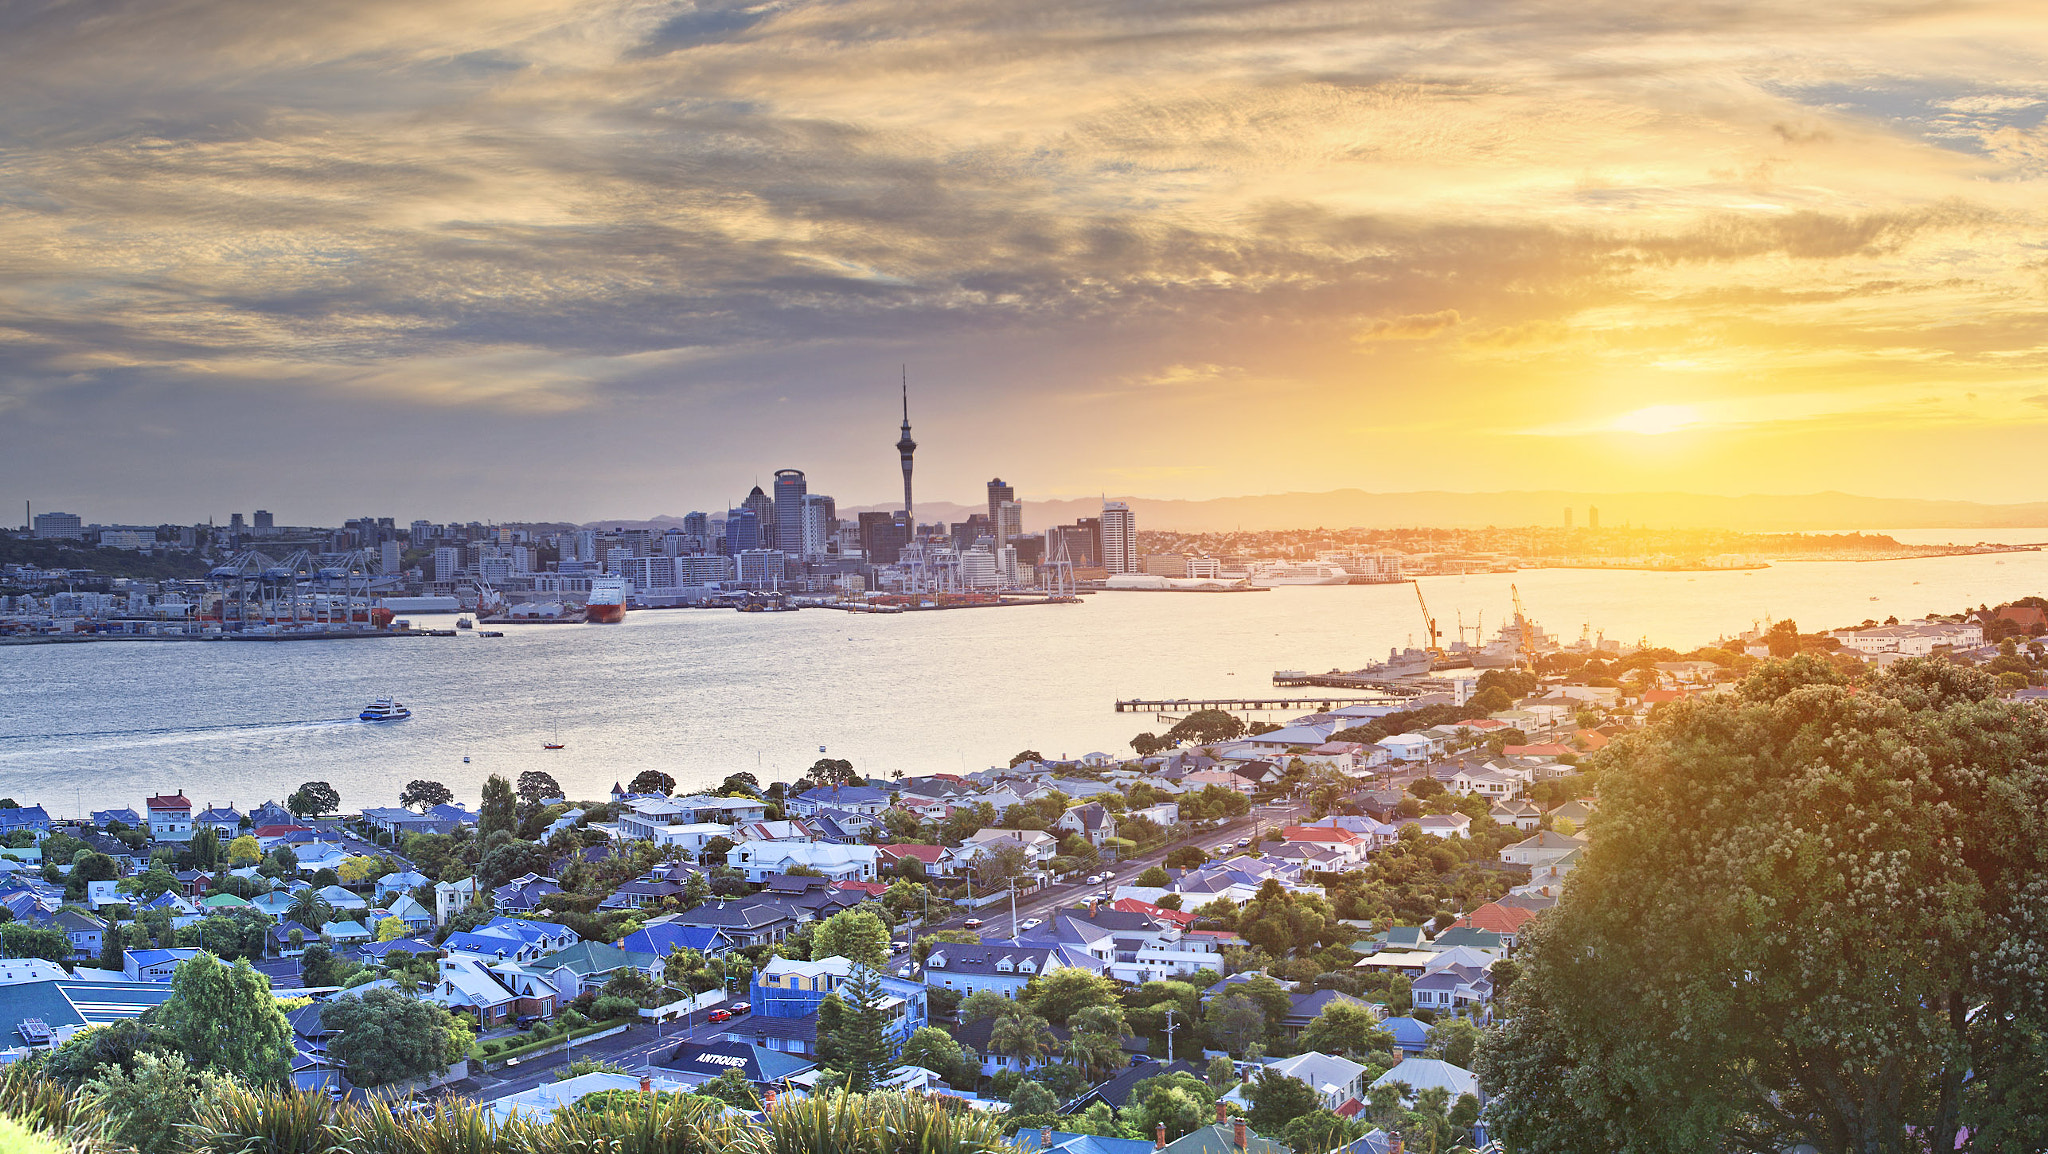 Photograph auckland sunset by Maurizio Rellini on 500px